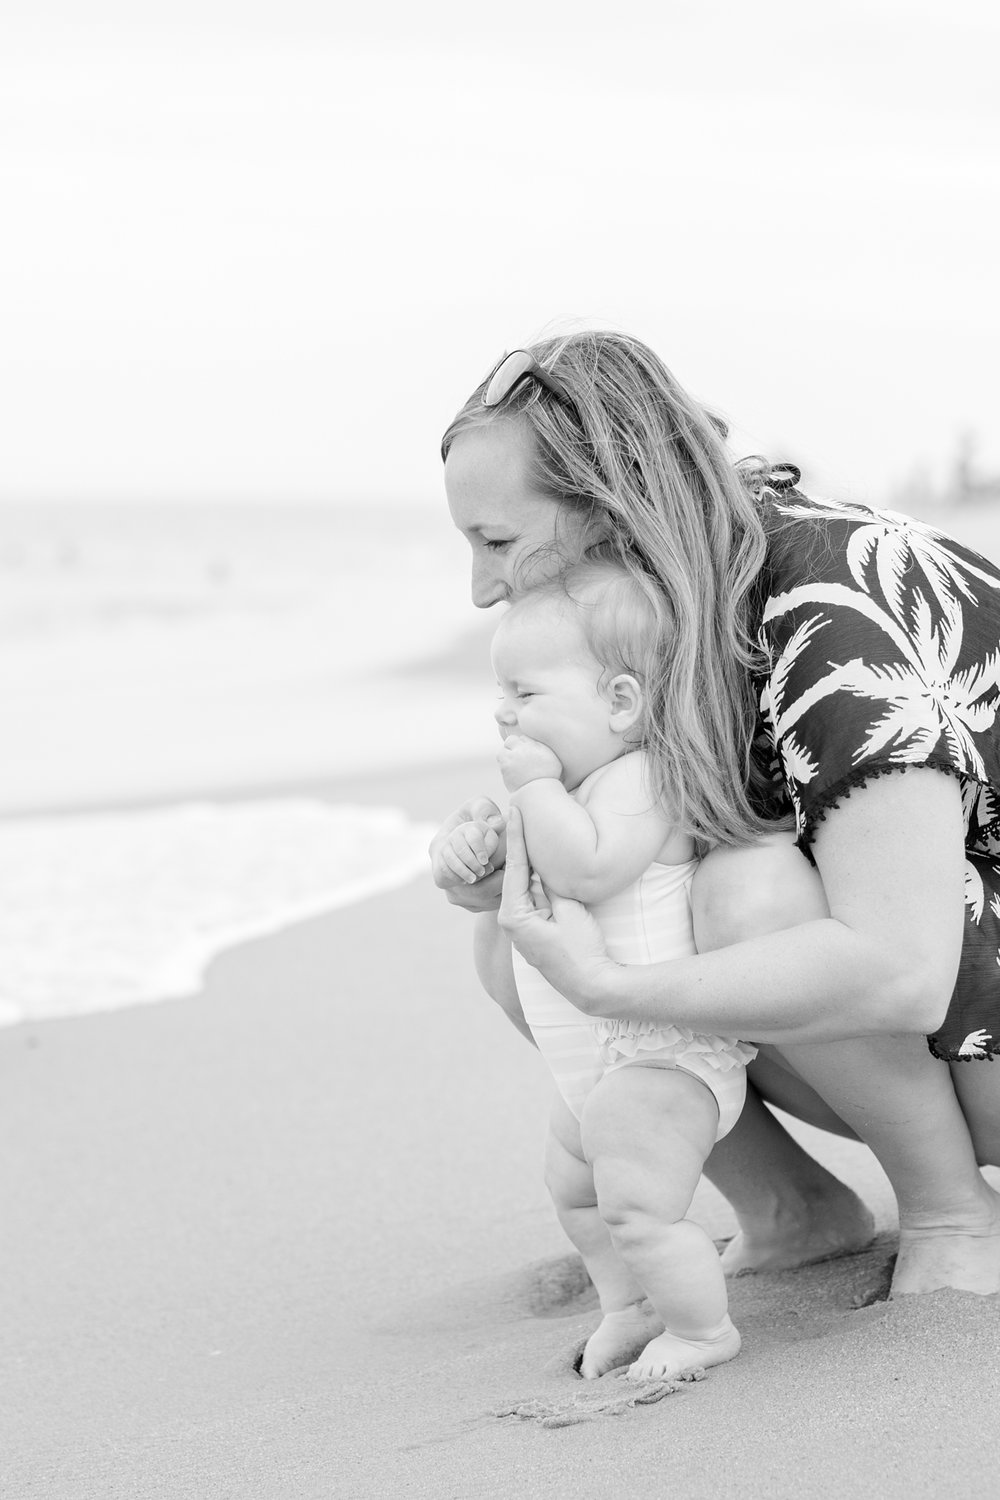 Rehoboth Beach Vacay-57_rehoboth-beach-family-vacation-beach-baby-anna-grace-photography-photo.jpg